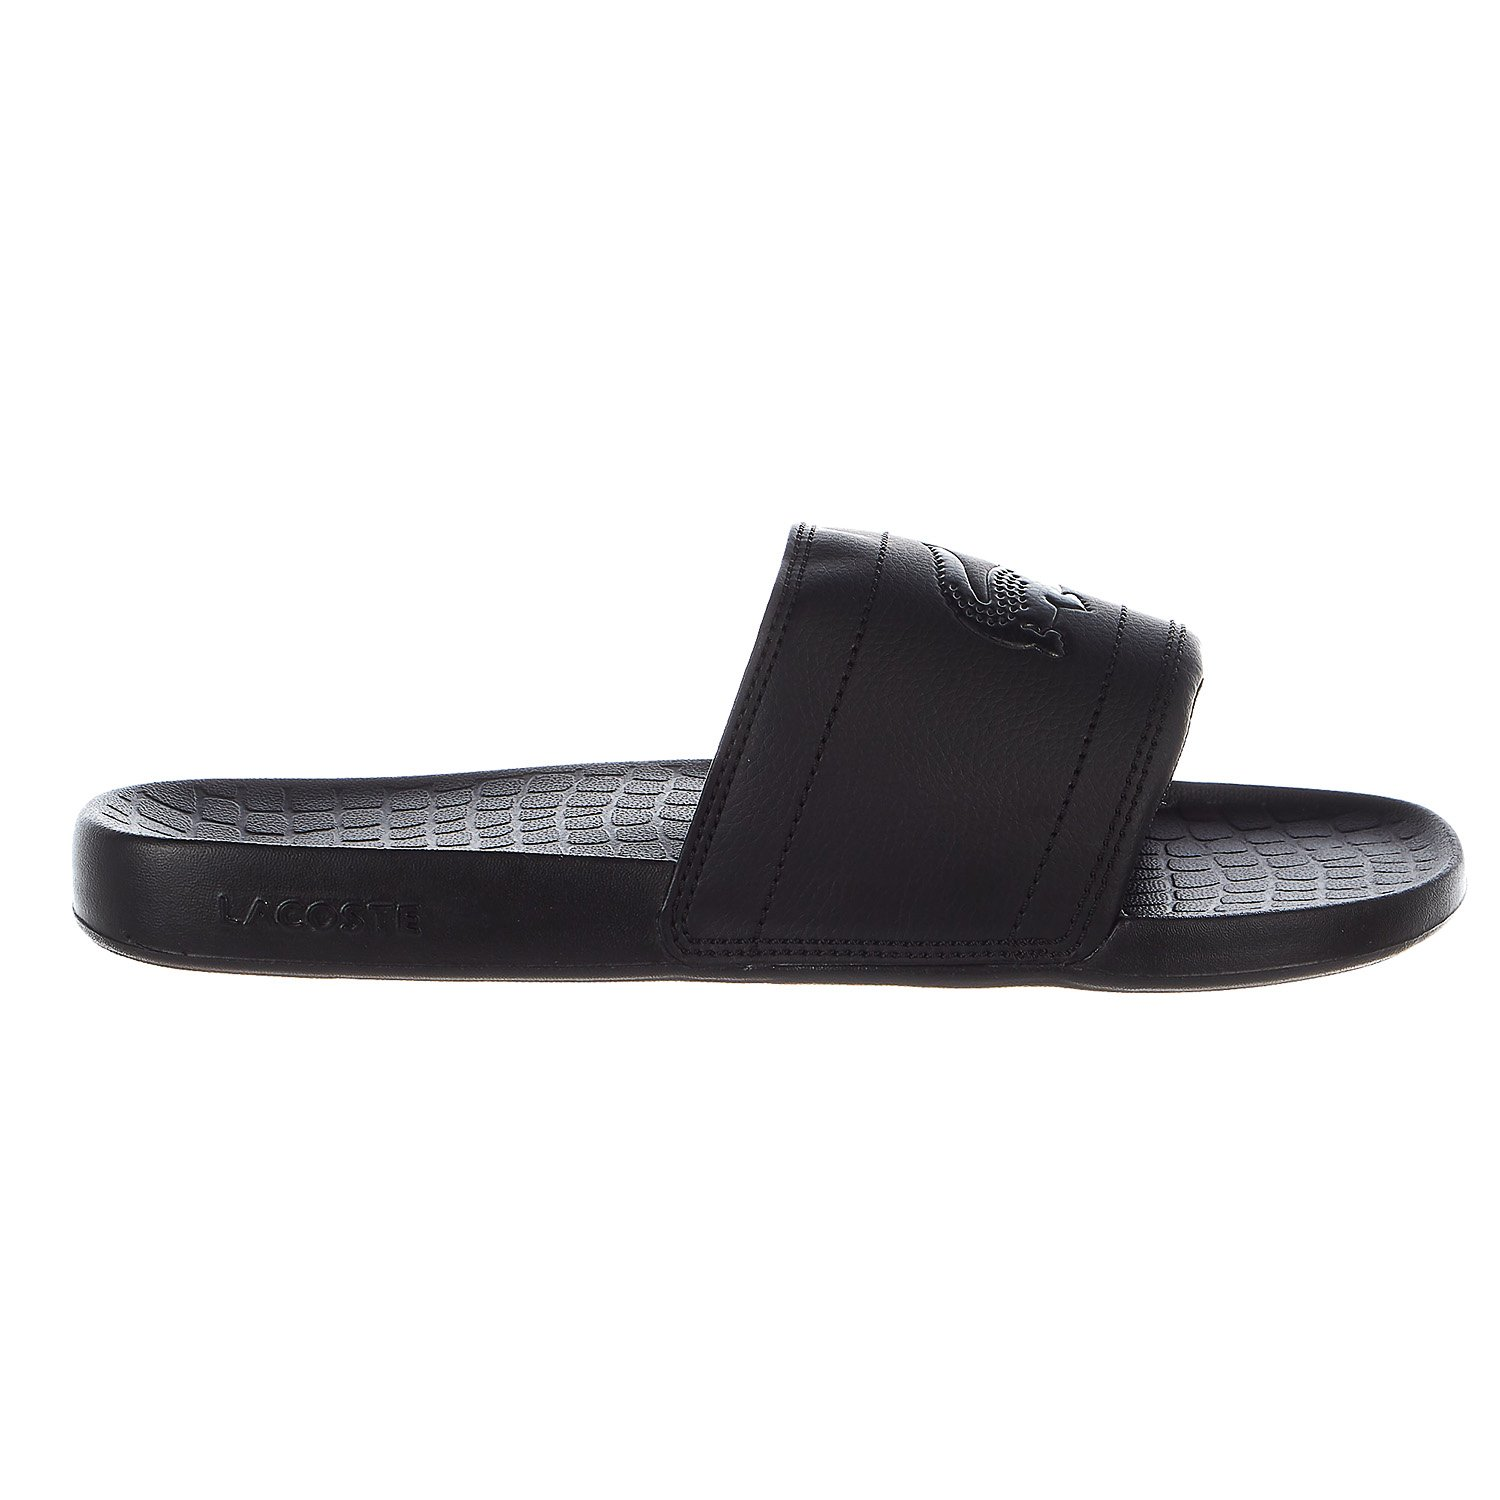 Lacoste Men's Fraisier Slides 118 1 US, Black/Black synthetic, 11 M US by Lacoste